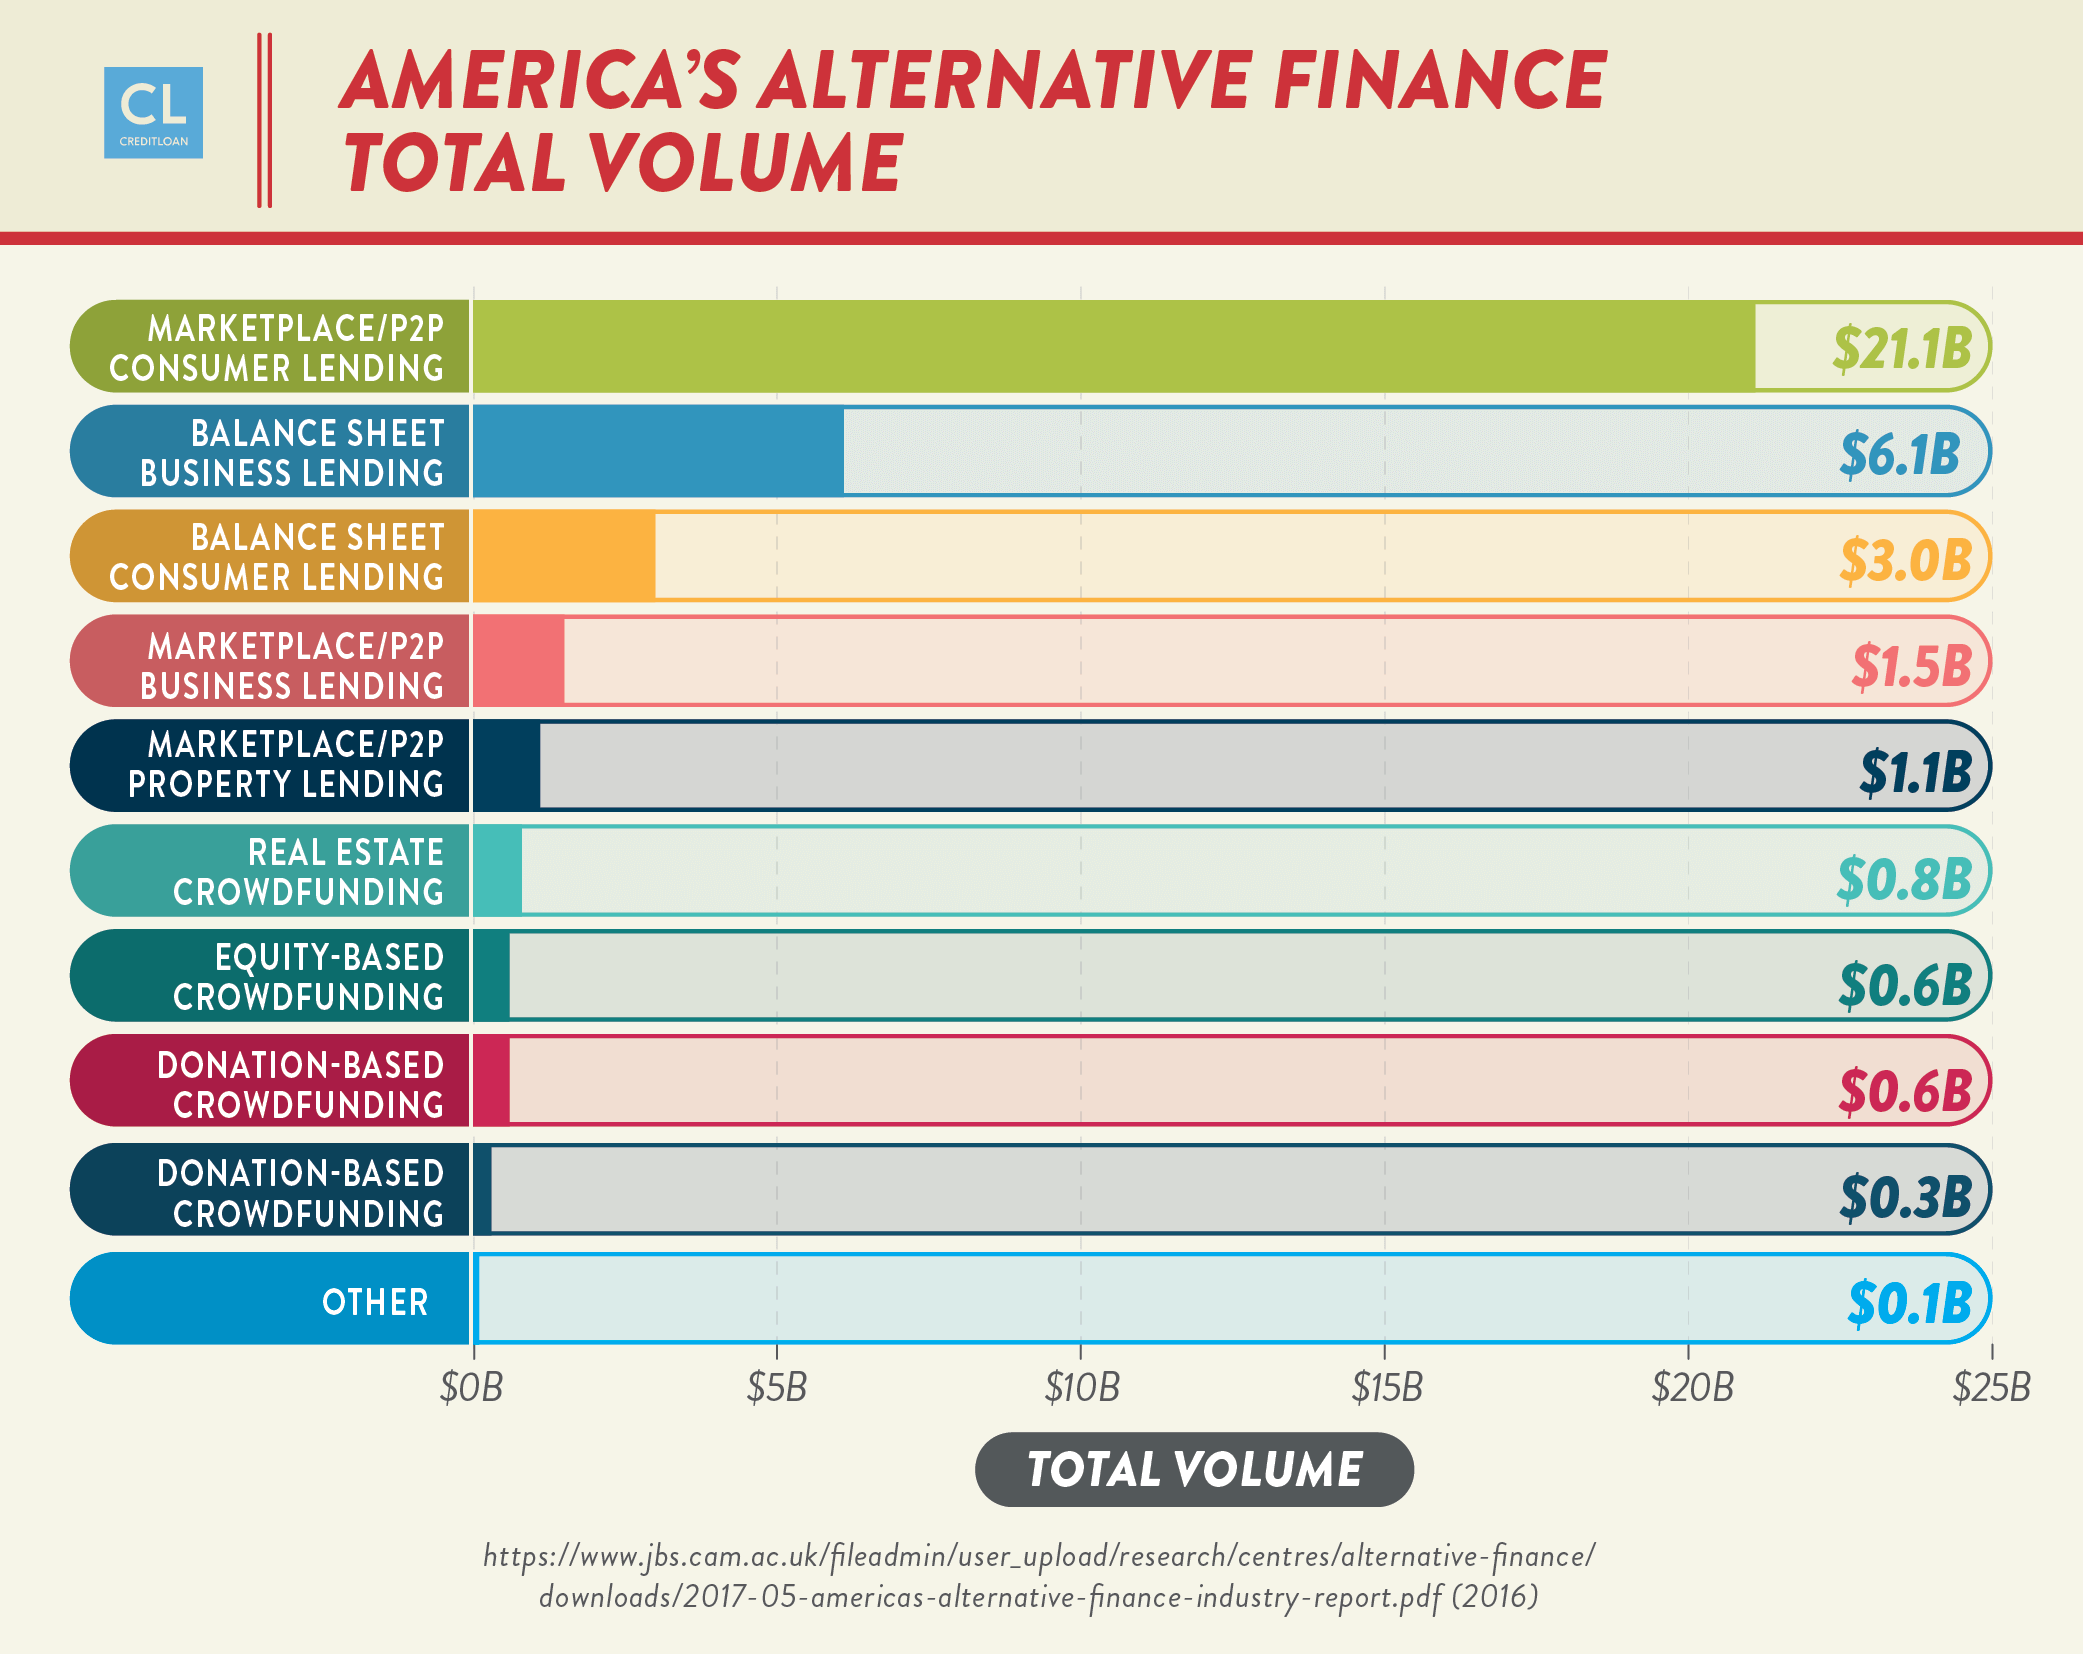 America's Alternative Finance - Total Volume data